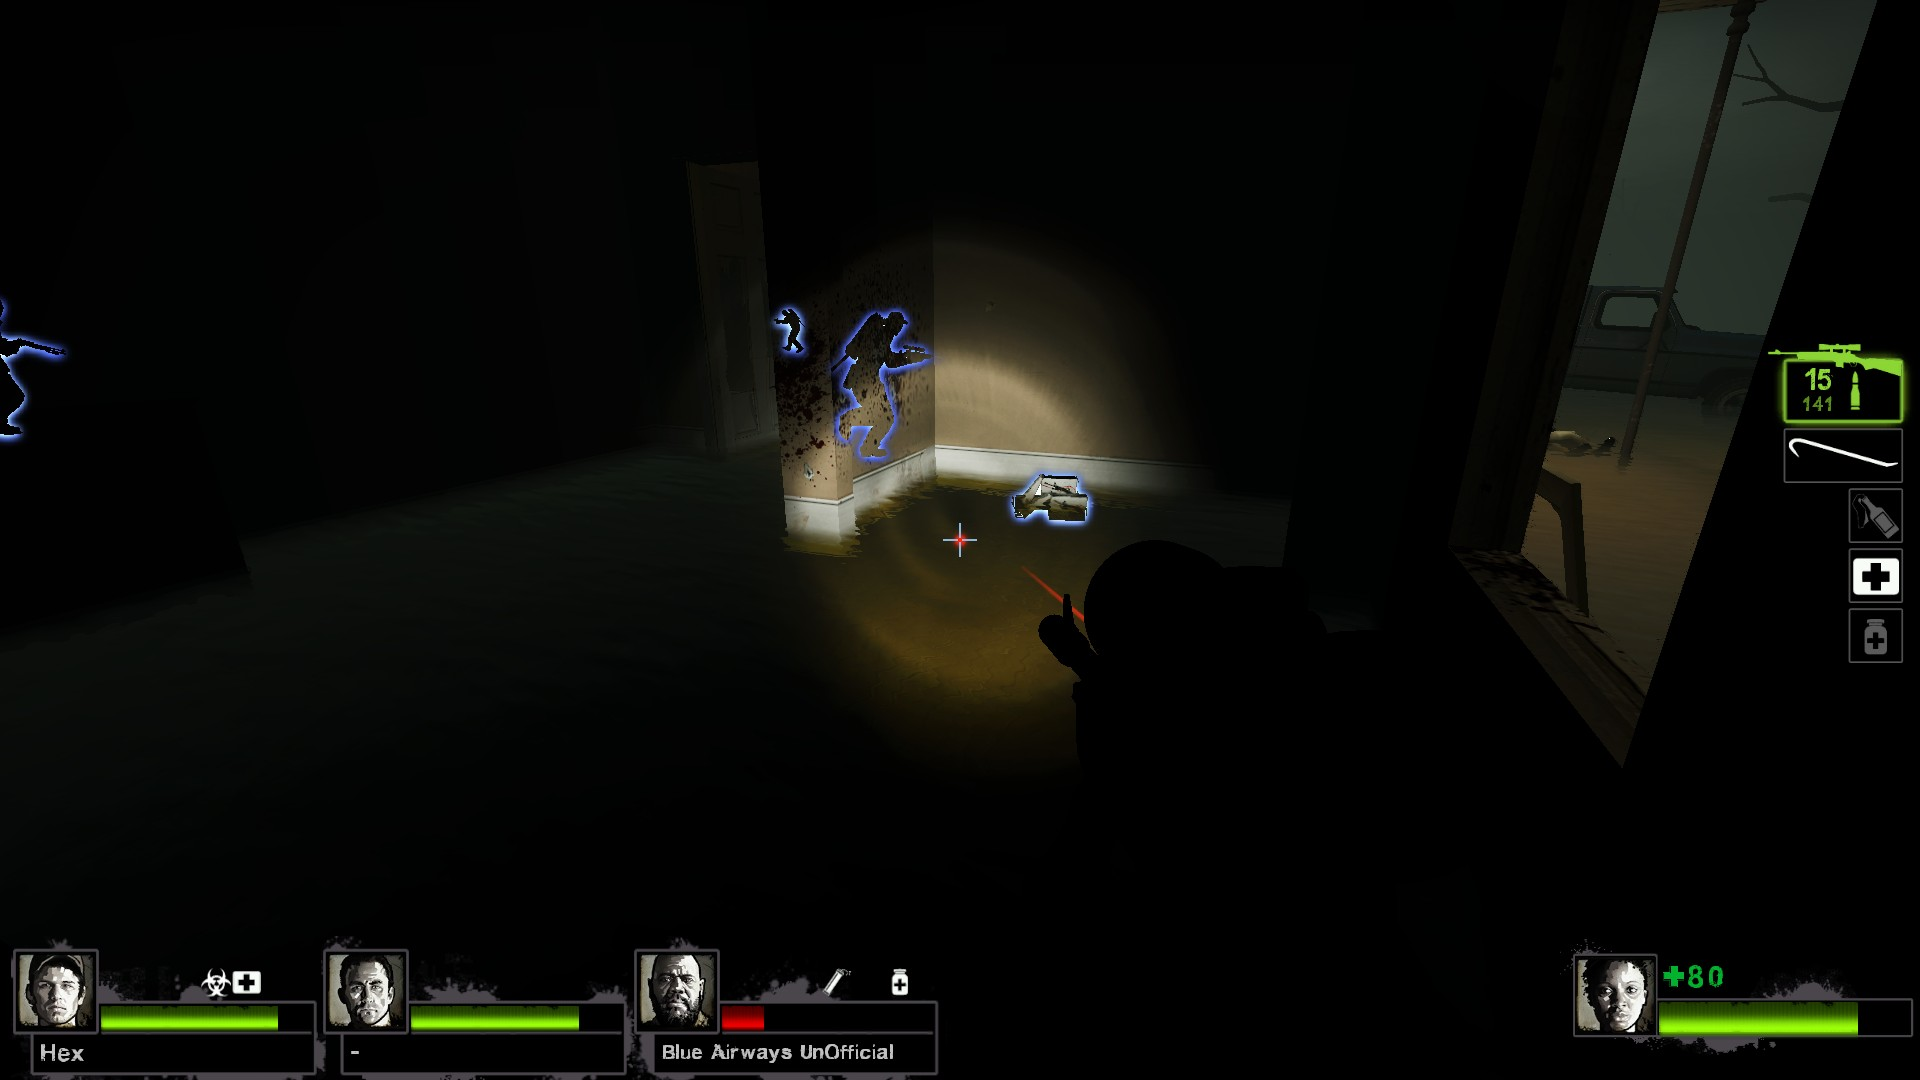 Left 4 Dead 2 - Detailed Guide for All Laser Sight Locations in Game - Map Guide - Potential spots, L4D2 maps - 387C079